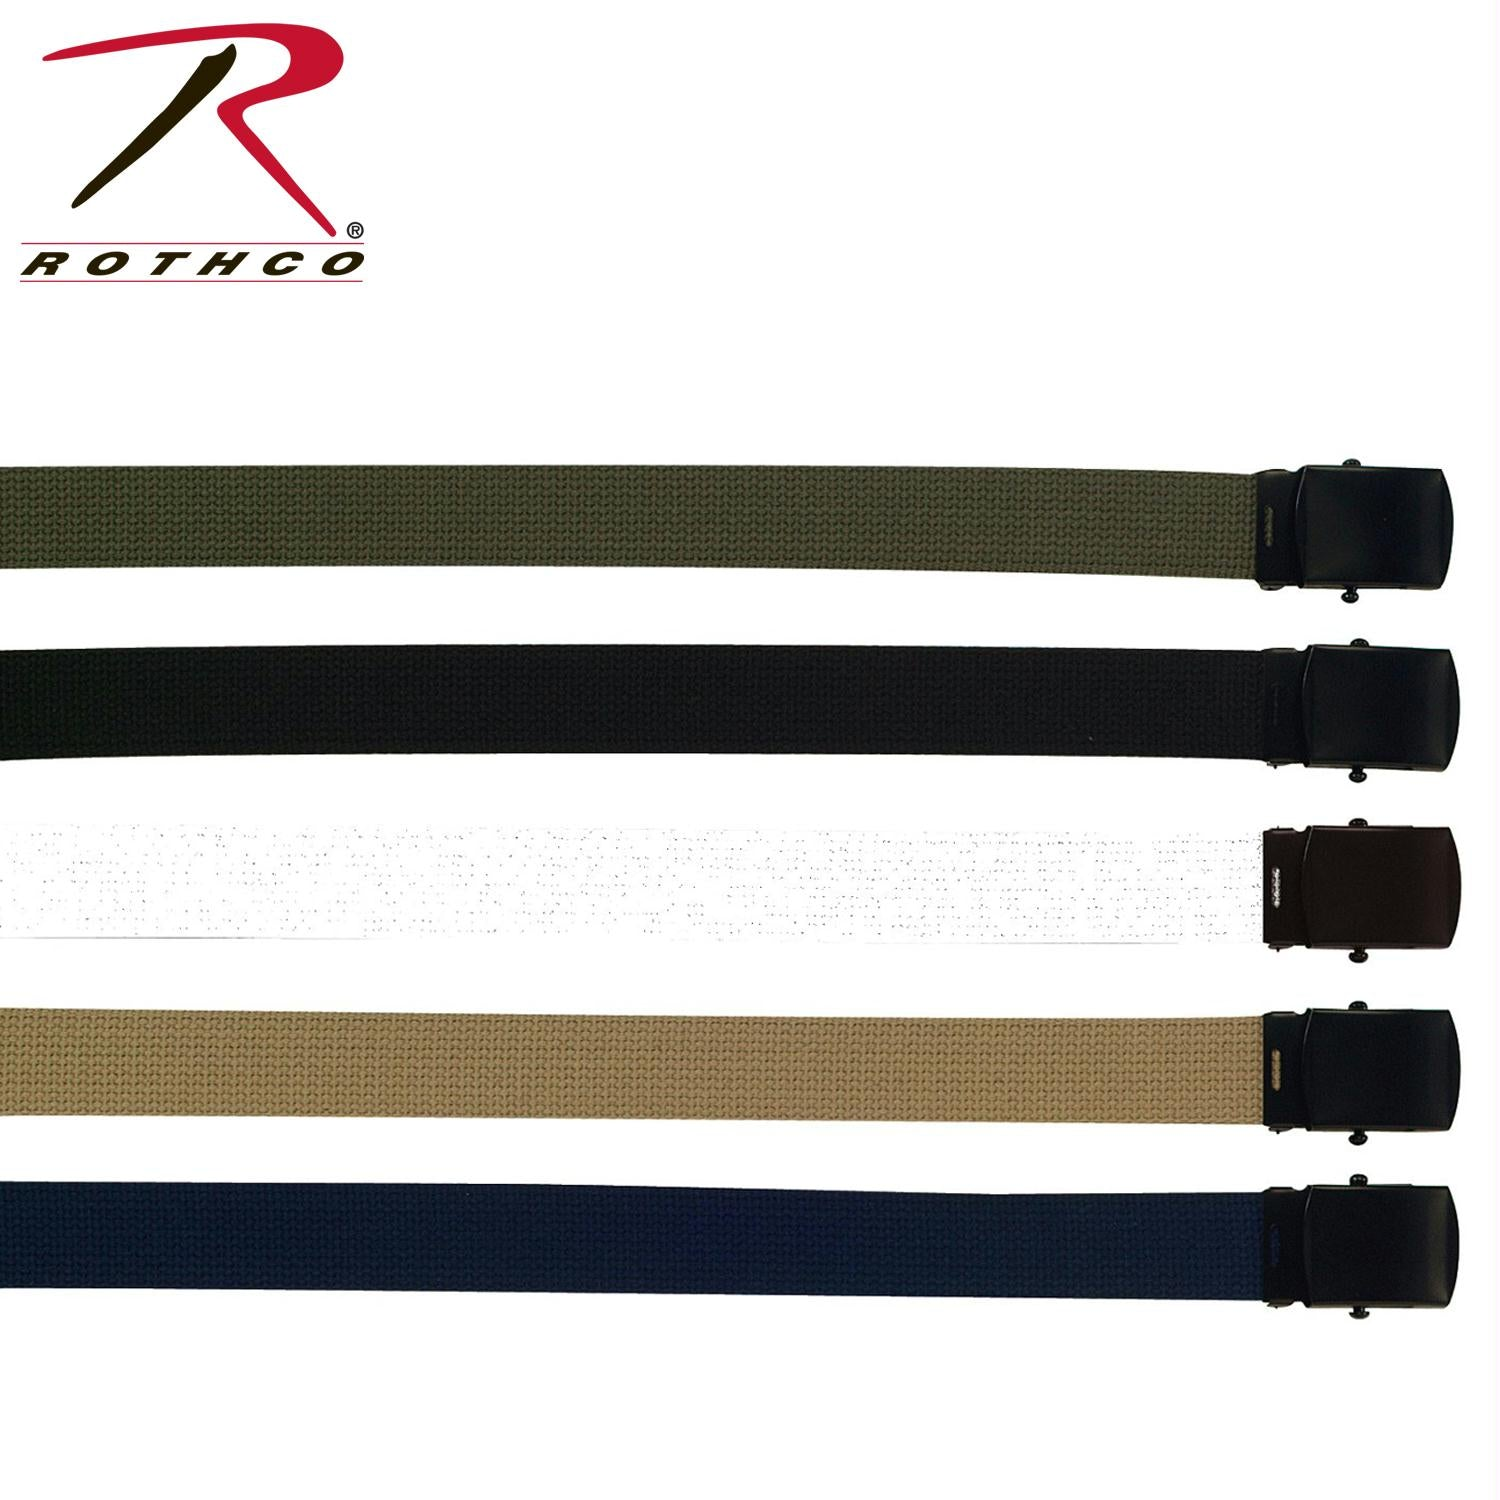 Rothco Military Web Belts w/ Black Buckle - Navy Blue / 44 Inches